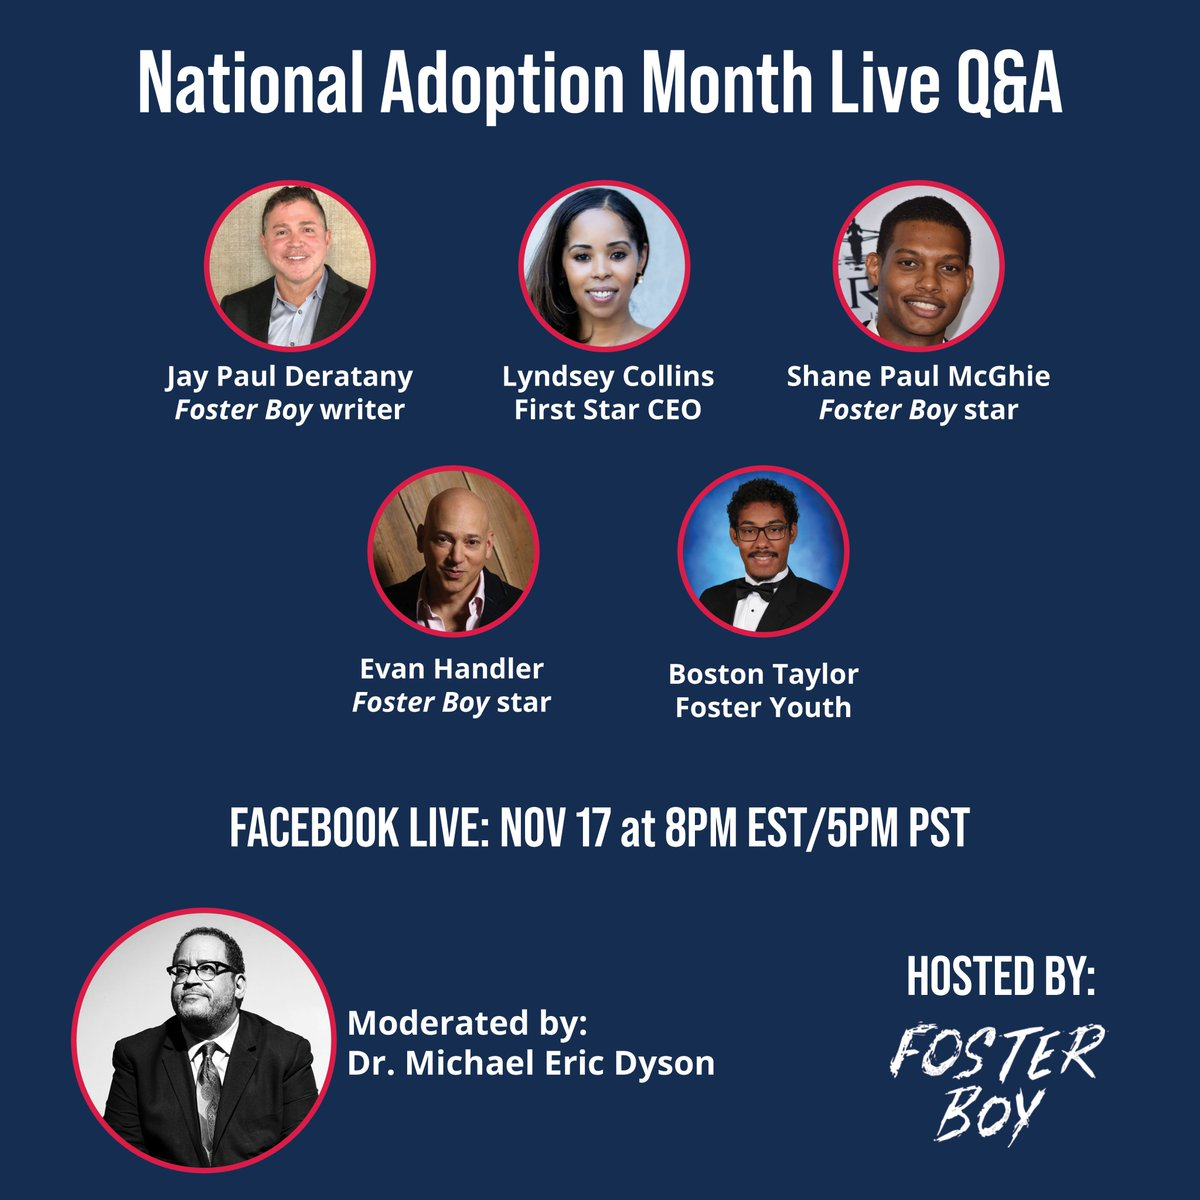 We're excited to have all these wonderful panelists join us tonight for our live Q&A for #NationalAdoptionAwarenessMonth! Be sure to join us on Facebook Live at 5pm PST/8pm EST for a terrific discussion about how we can #FixFosterCare! @MsCollinsSci @MichaelEDyson